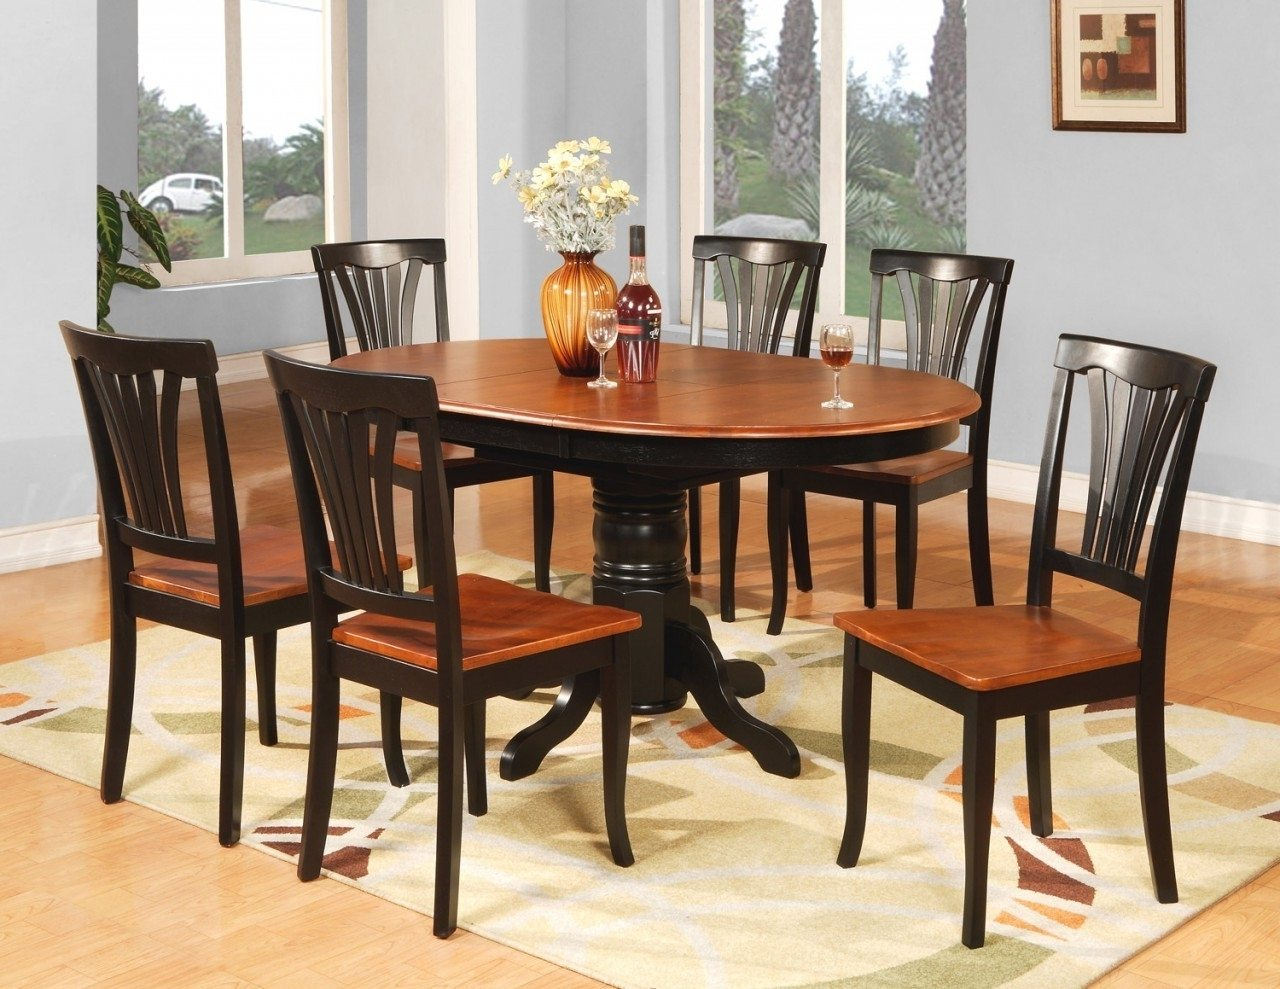 Cheap dining room tables chairs how to bargain for for Pictures of dining room sets